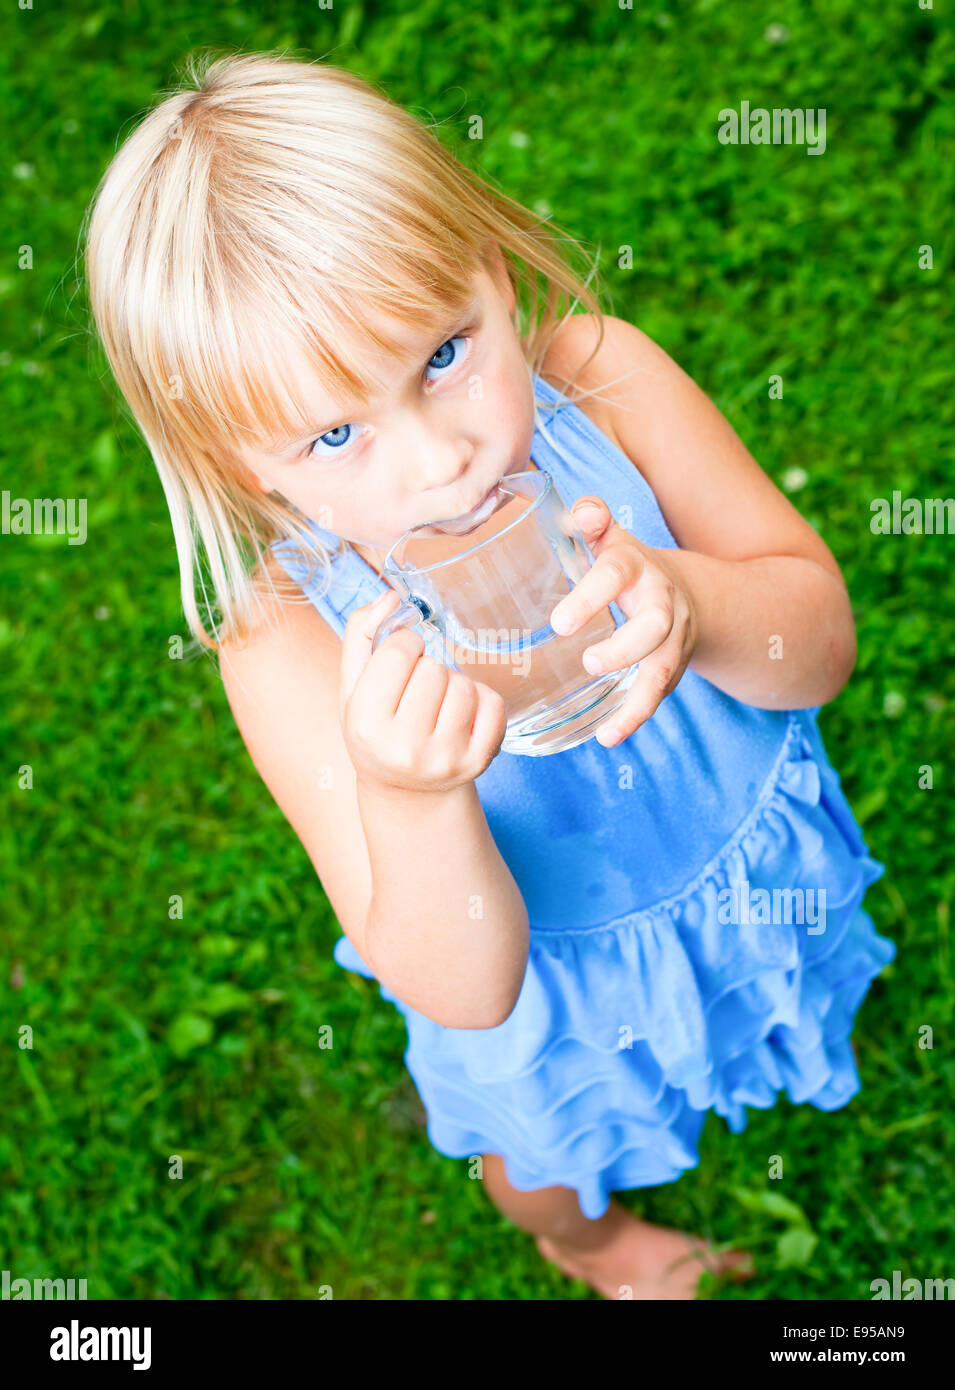 Cute little girl drinking water outdoors - Stock Image